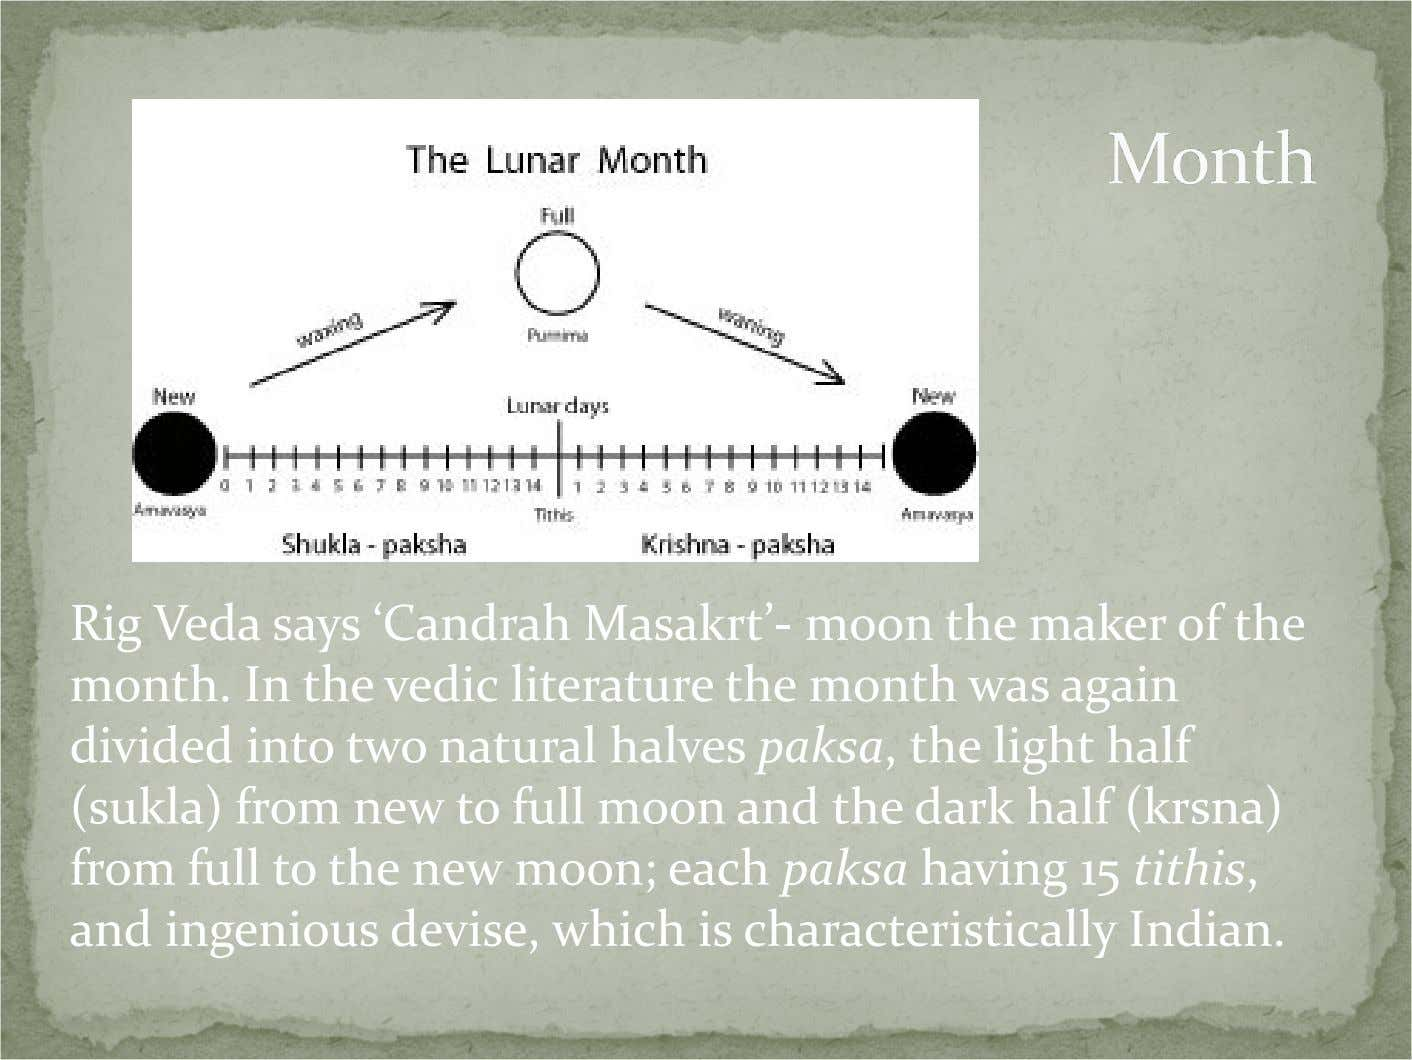 Rig Veda says 'Candrah Masakrt'- moon the maker of the month. In the vedic literature